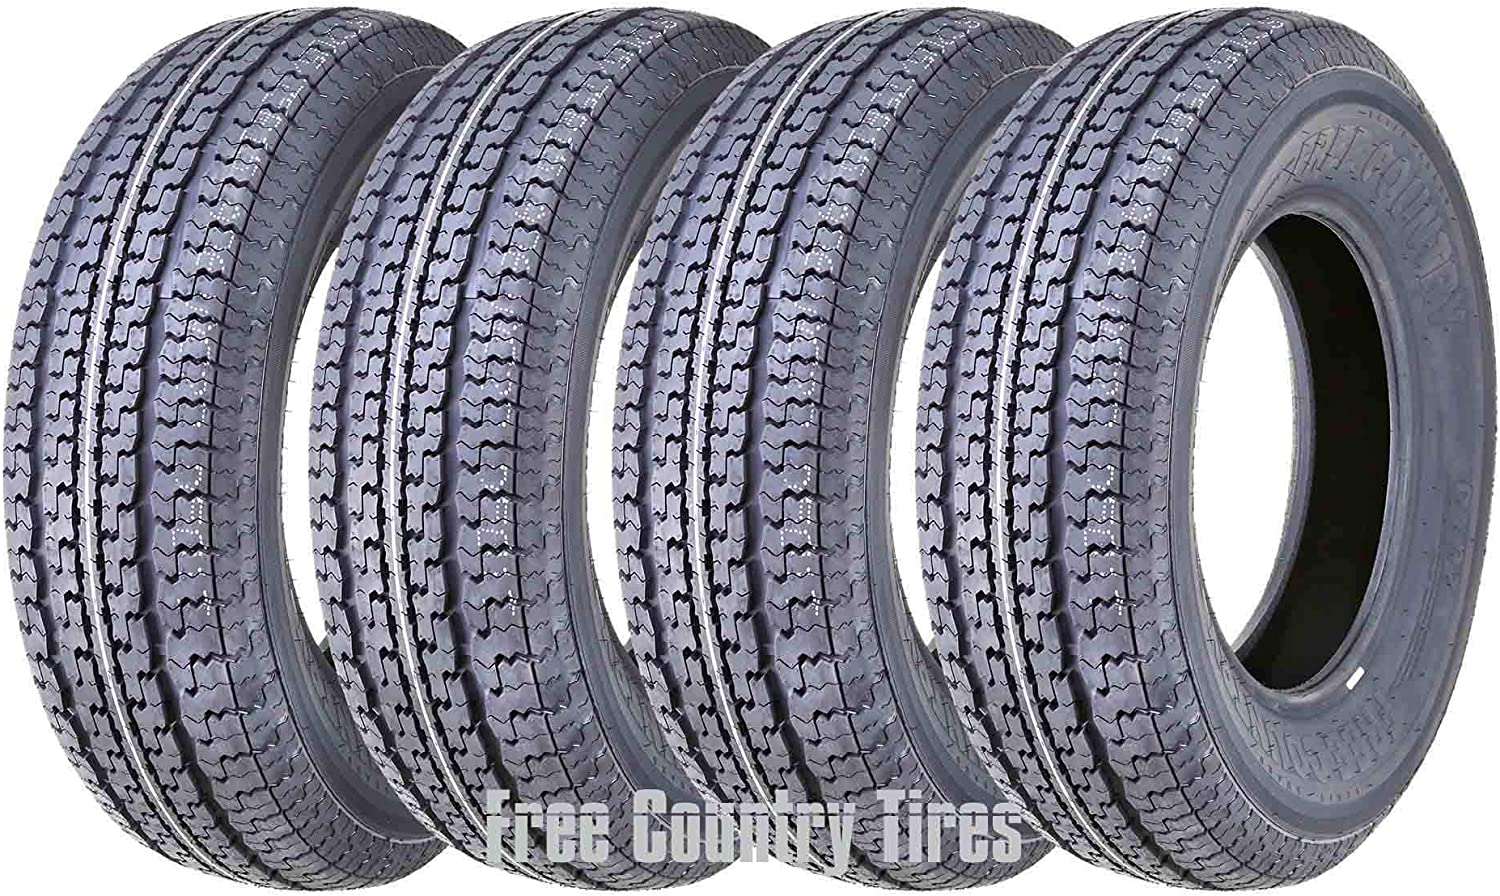 FREE COUNTRY Set 4 Premium Trailer Tires ST205/75R15 8PR Load Range D Radial w/Scuff Guard